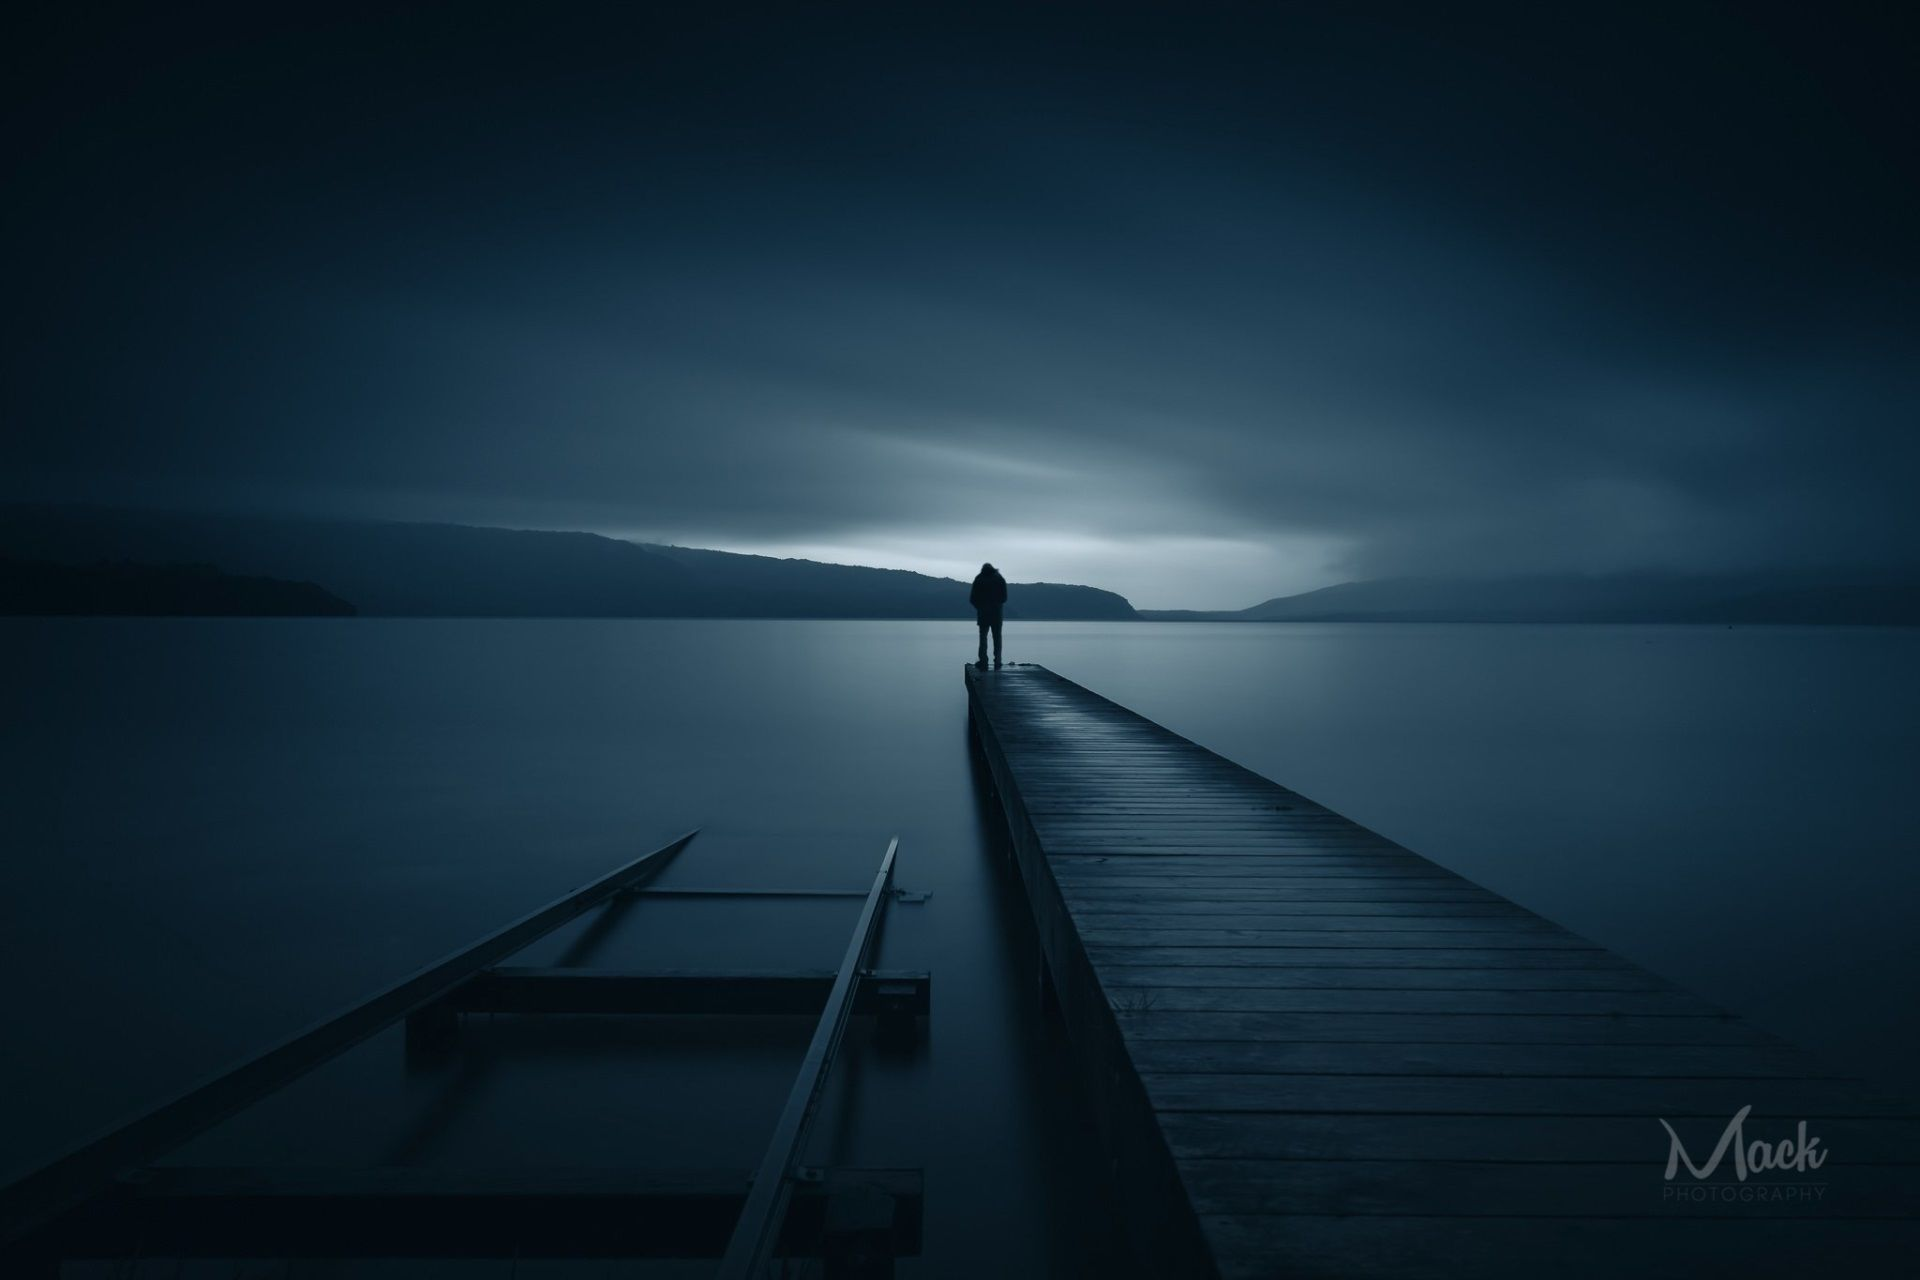 1920x1280 Alone Wallpaper For Downloading Beautiful Wallpapers Background For Photography Alone Photography